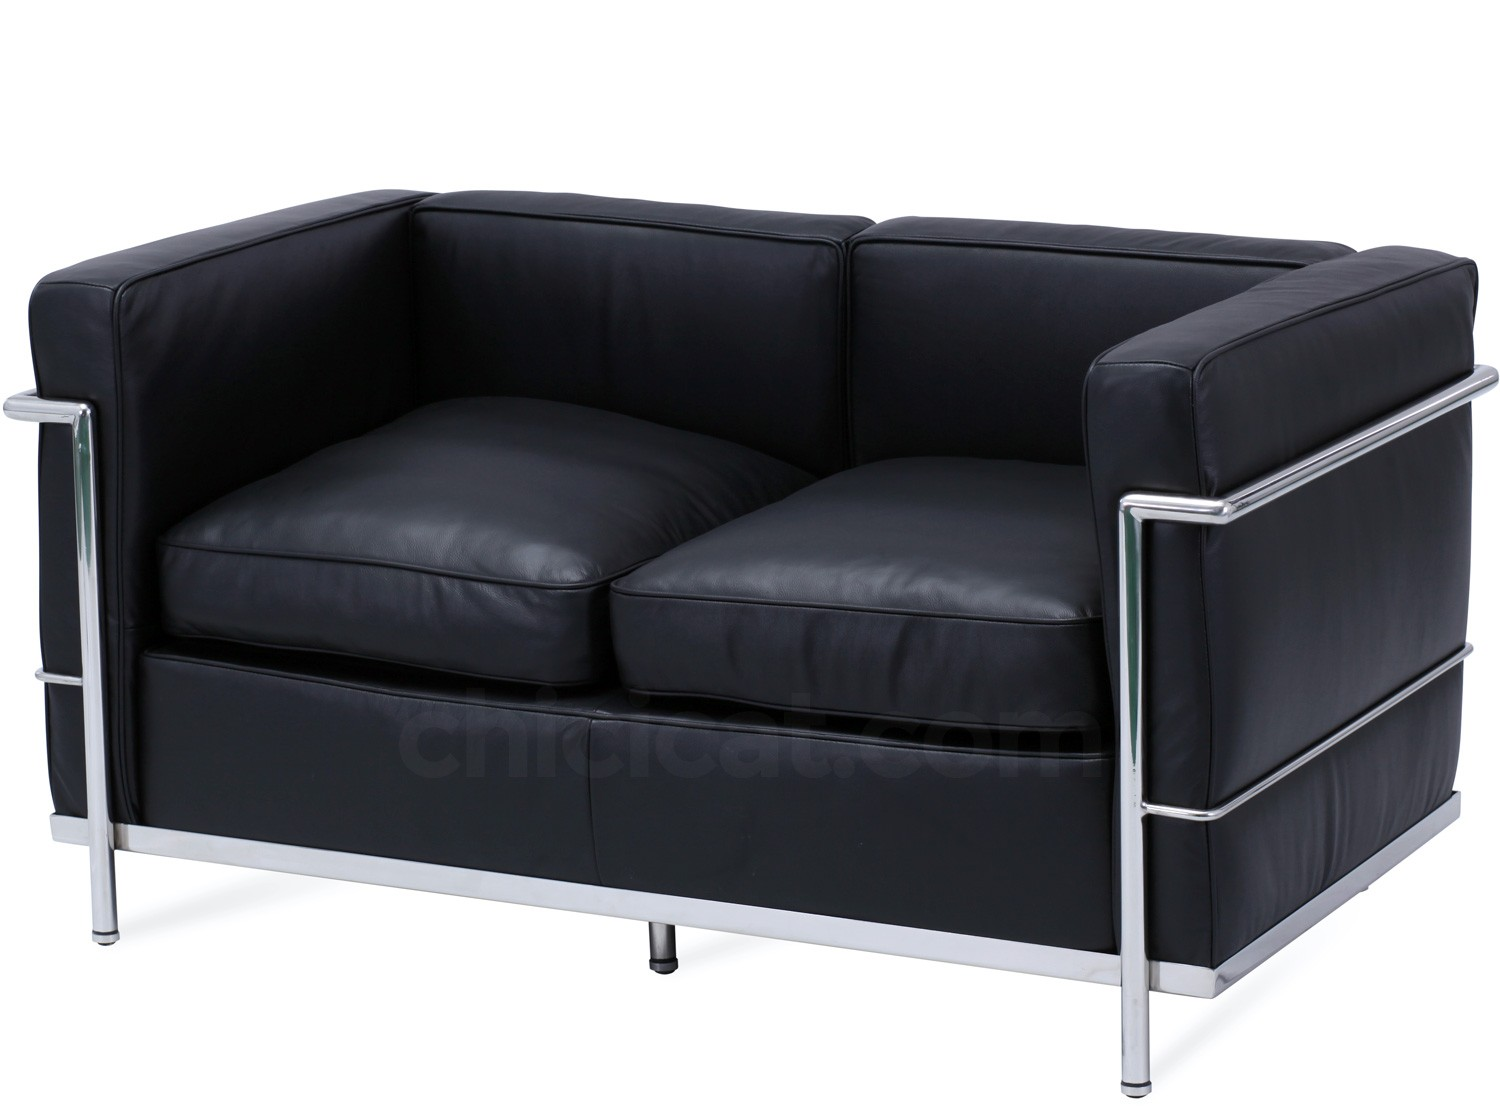 Le corbusier lc2 sofa 2 seater petit confort platinum for Le corbusier sofa nachbau